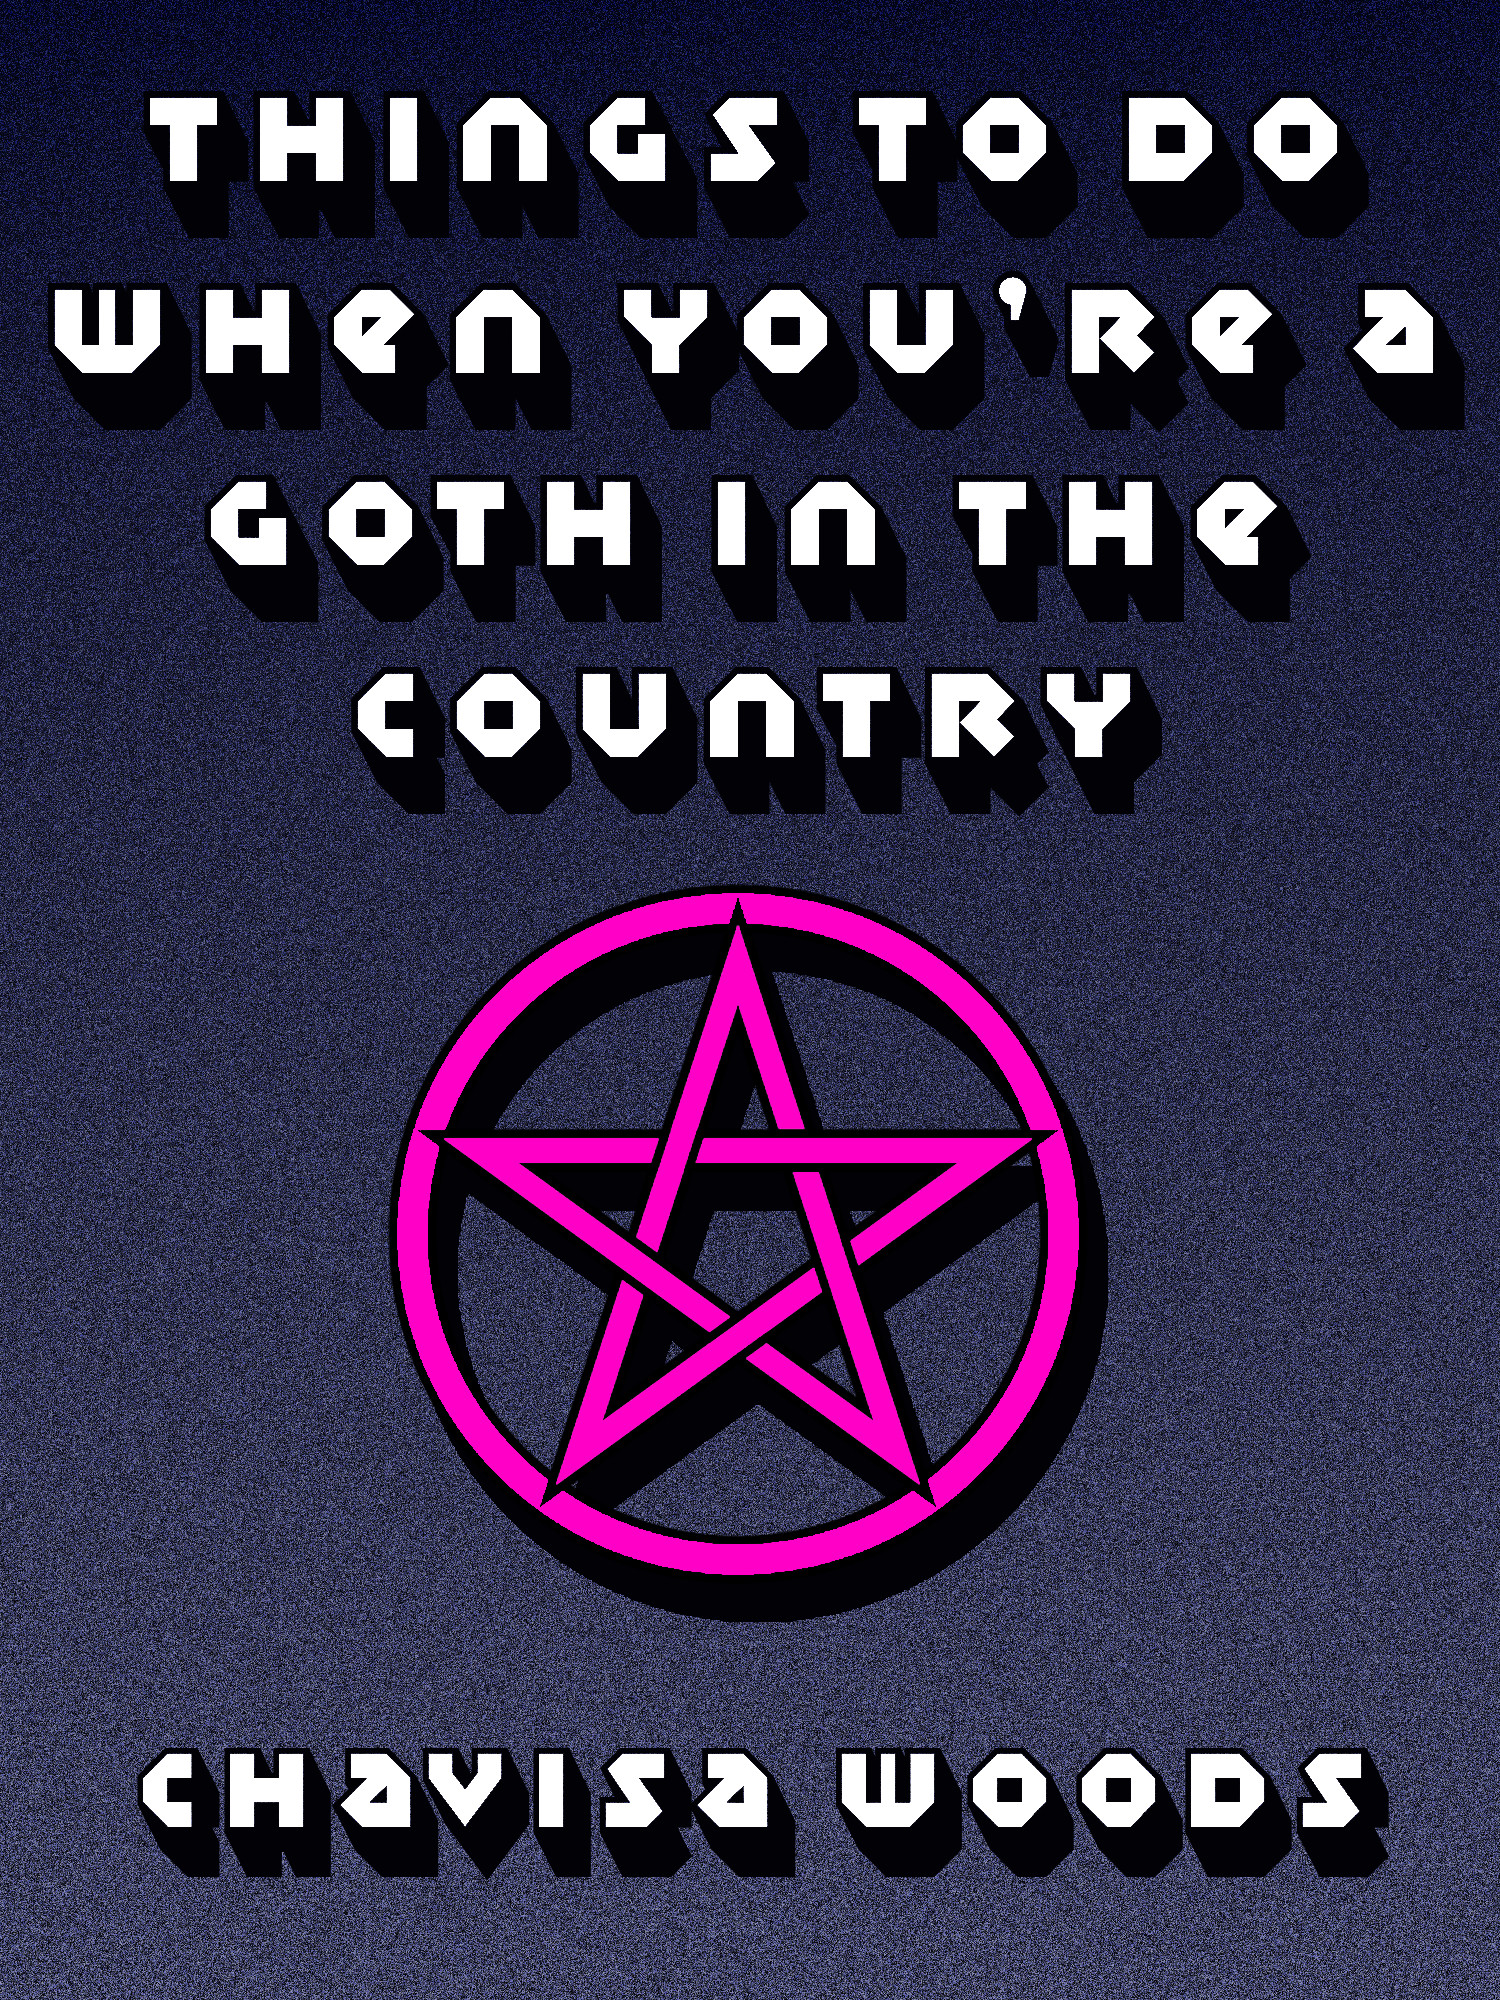 book cover chavisa woods goth in country